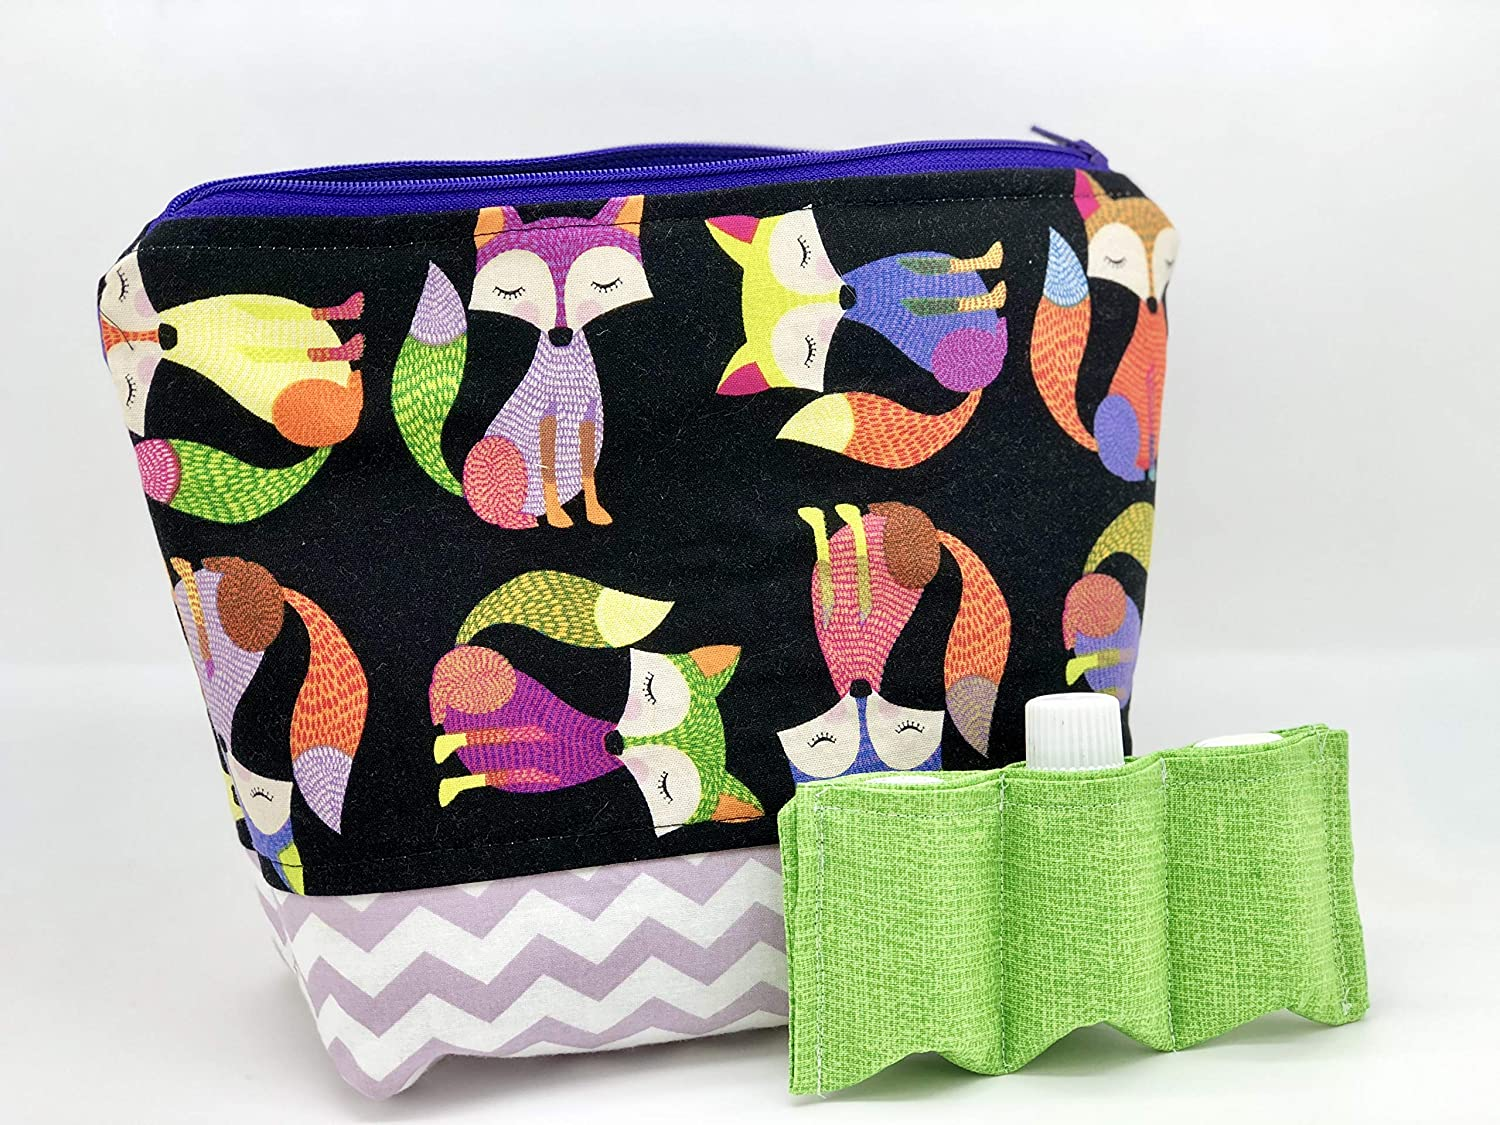 oils 15 ml 5 ml Young Living Doterra ~ Foxes chevron Essential Oil Bag for travel case with removable padded slots-Holds 22